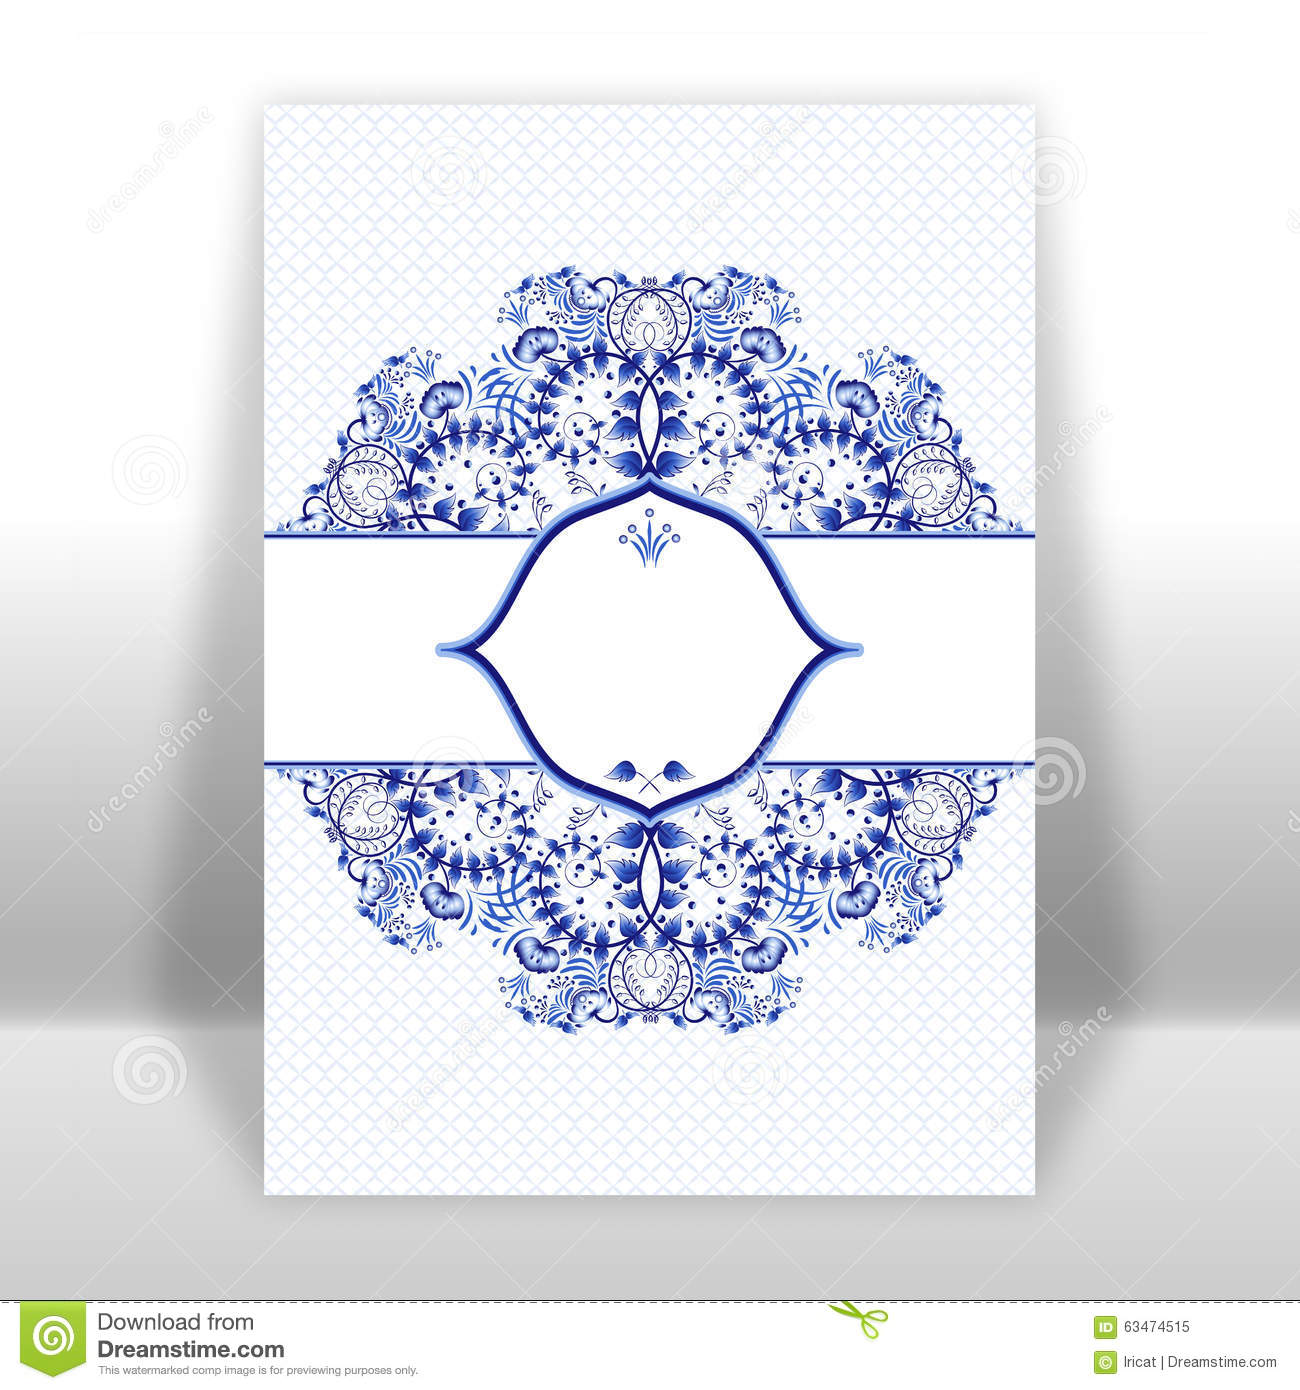 template design greeting card with a blue circular ornaments in